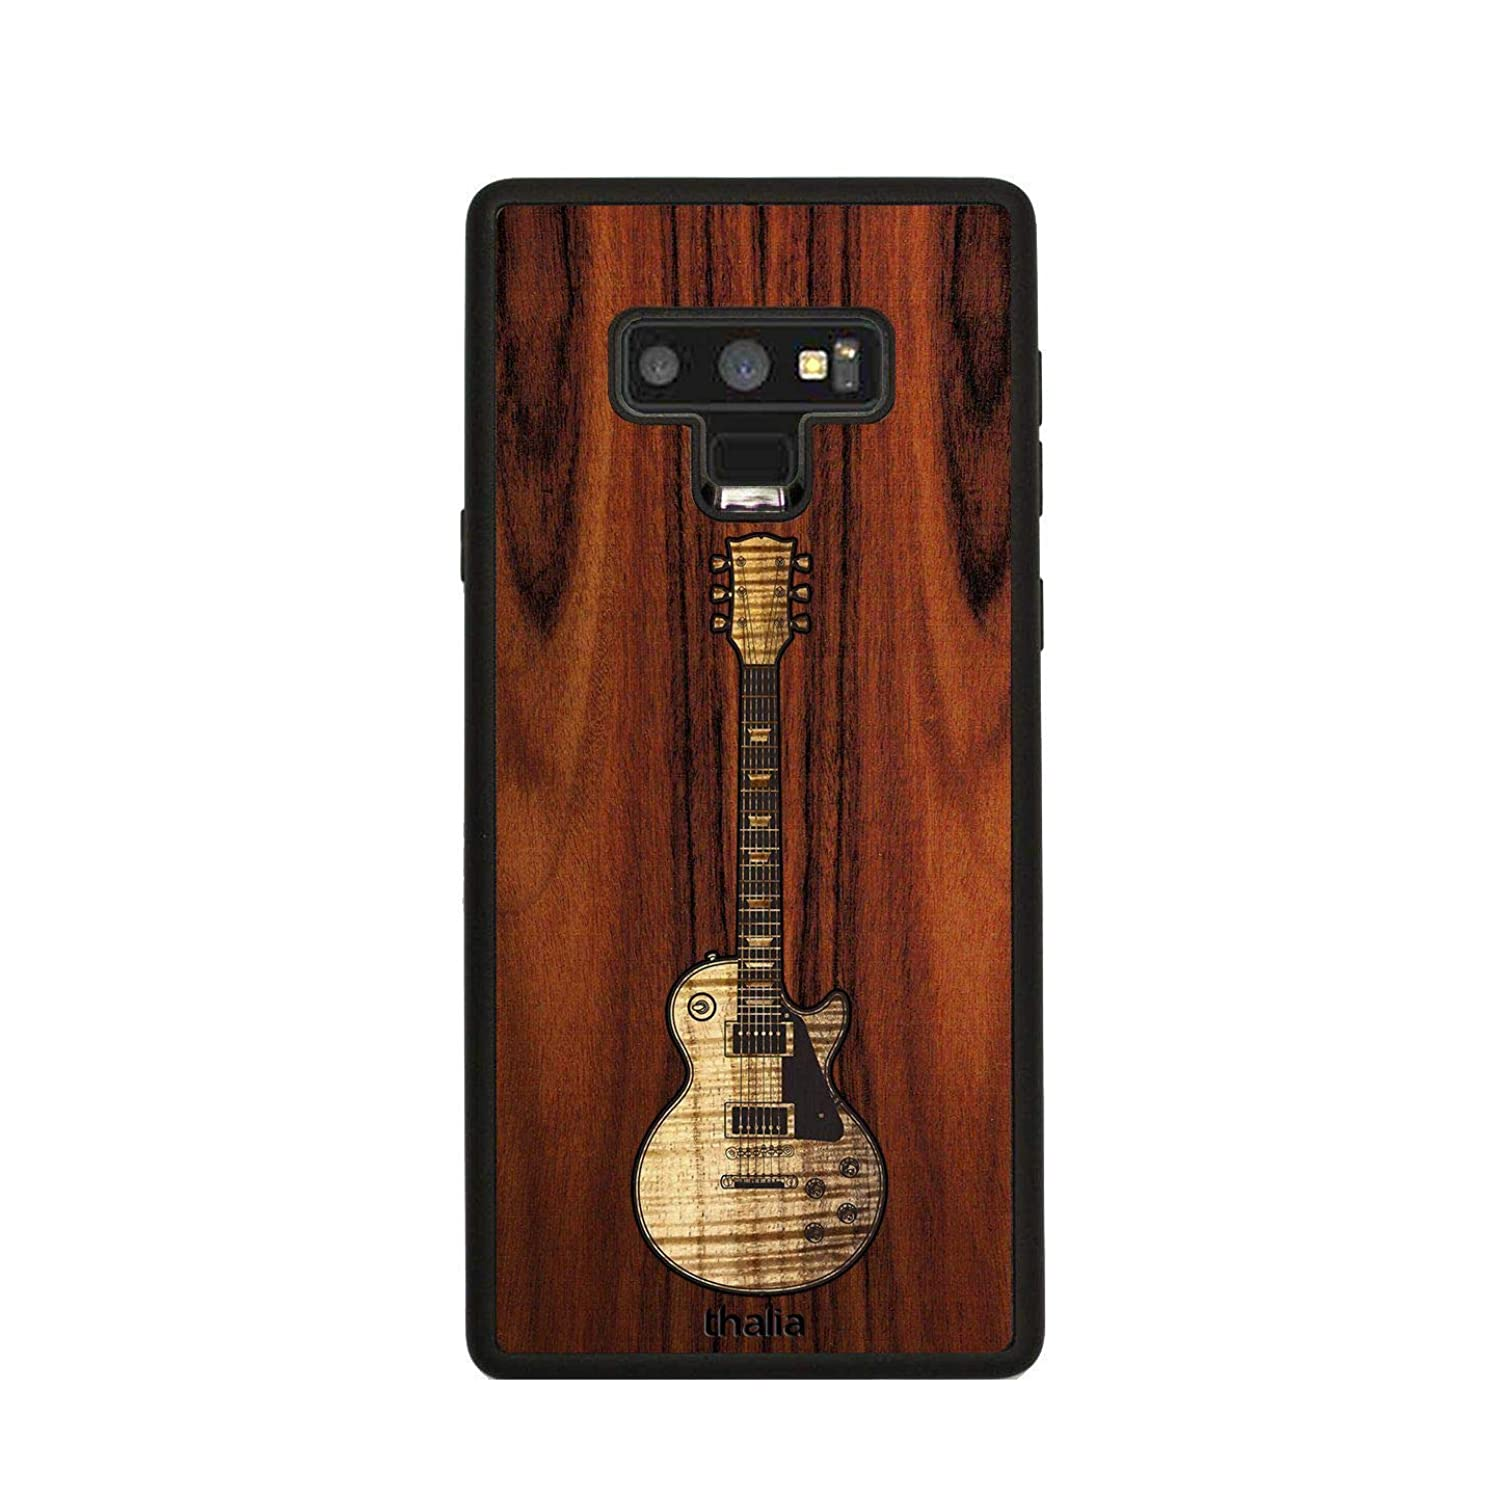 Santos Rosewood & Les Paul Hawaiian Koa Inlaid Guitar Phone Case | Thalia Exotic Wood Cases Samsung Galaxy Note 9